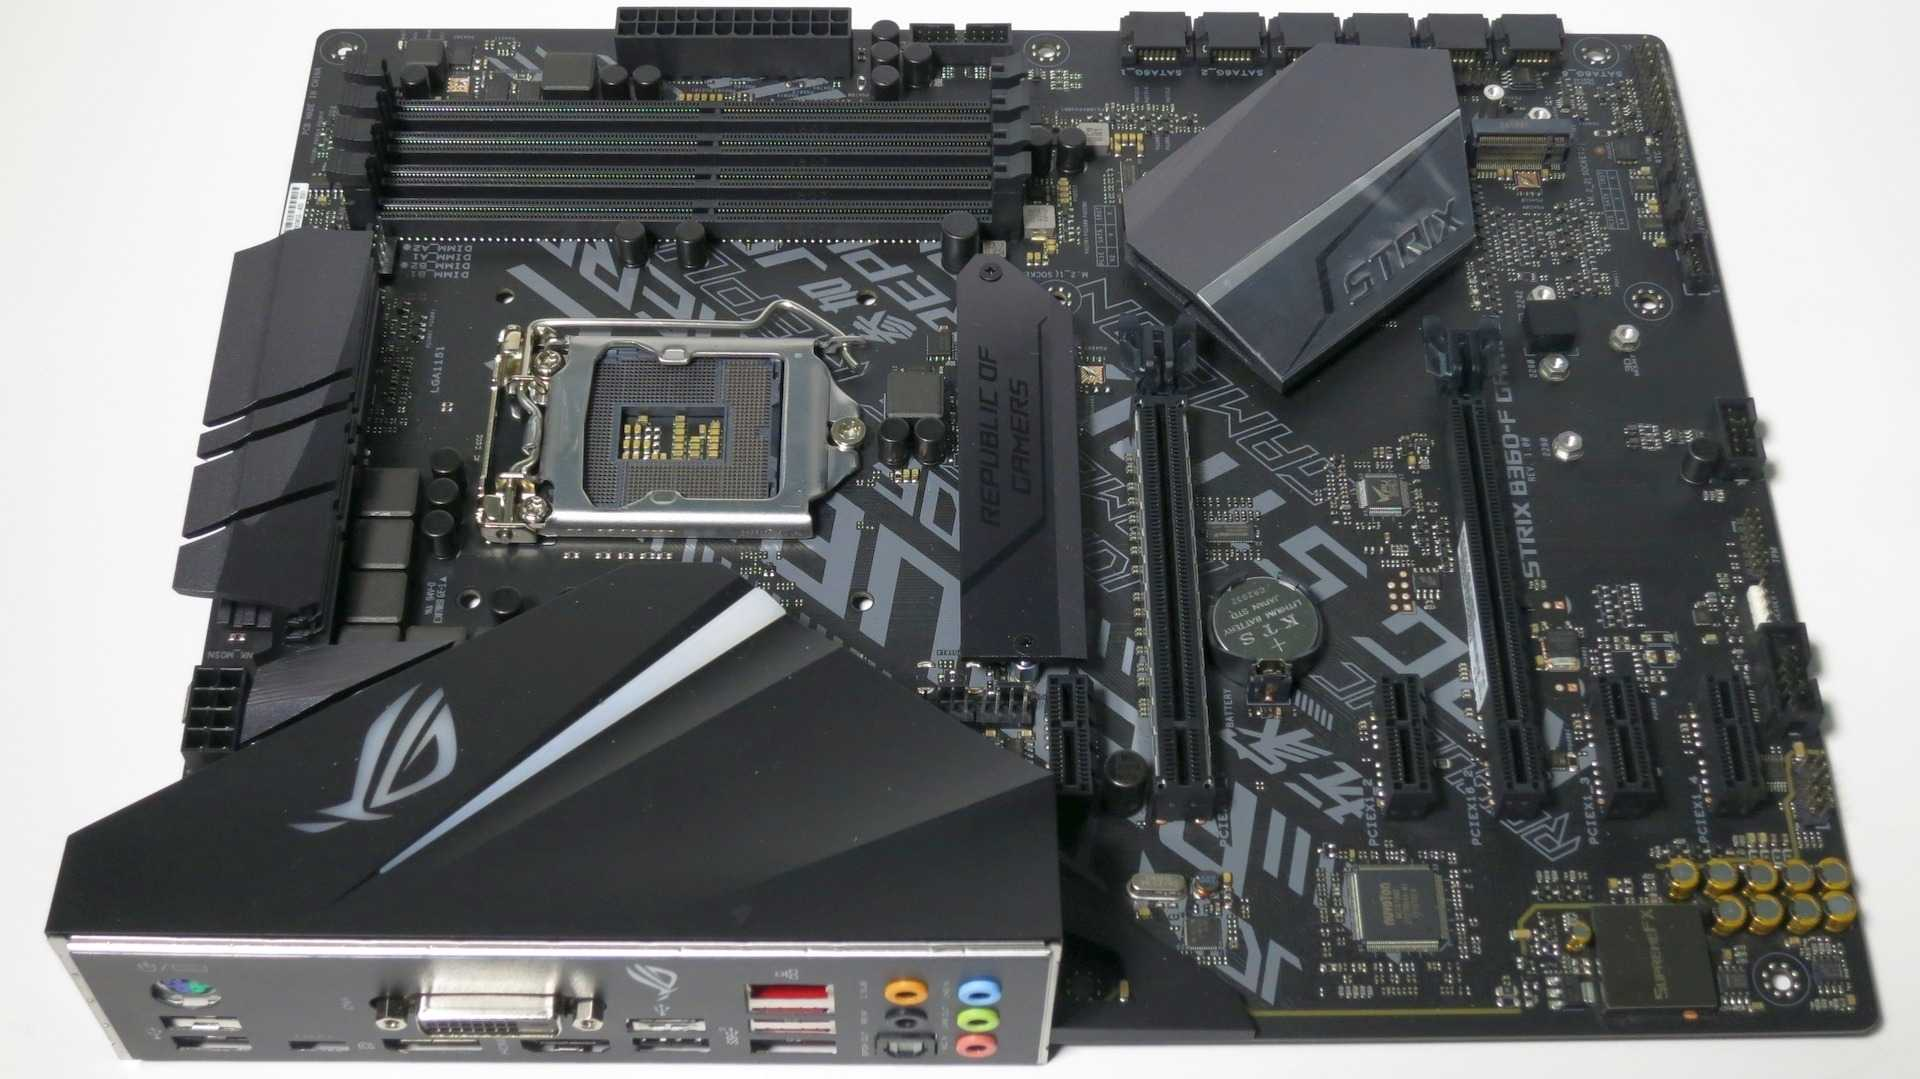 LGA1151-Mainboard Asus Strix B360-F Gaming mit Intel-Chipsatz der Serie 300 (B360)